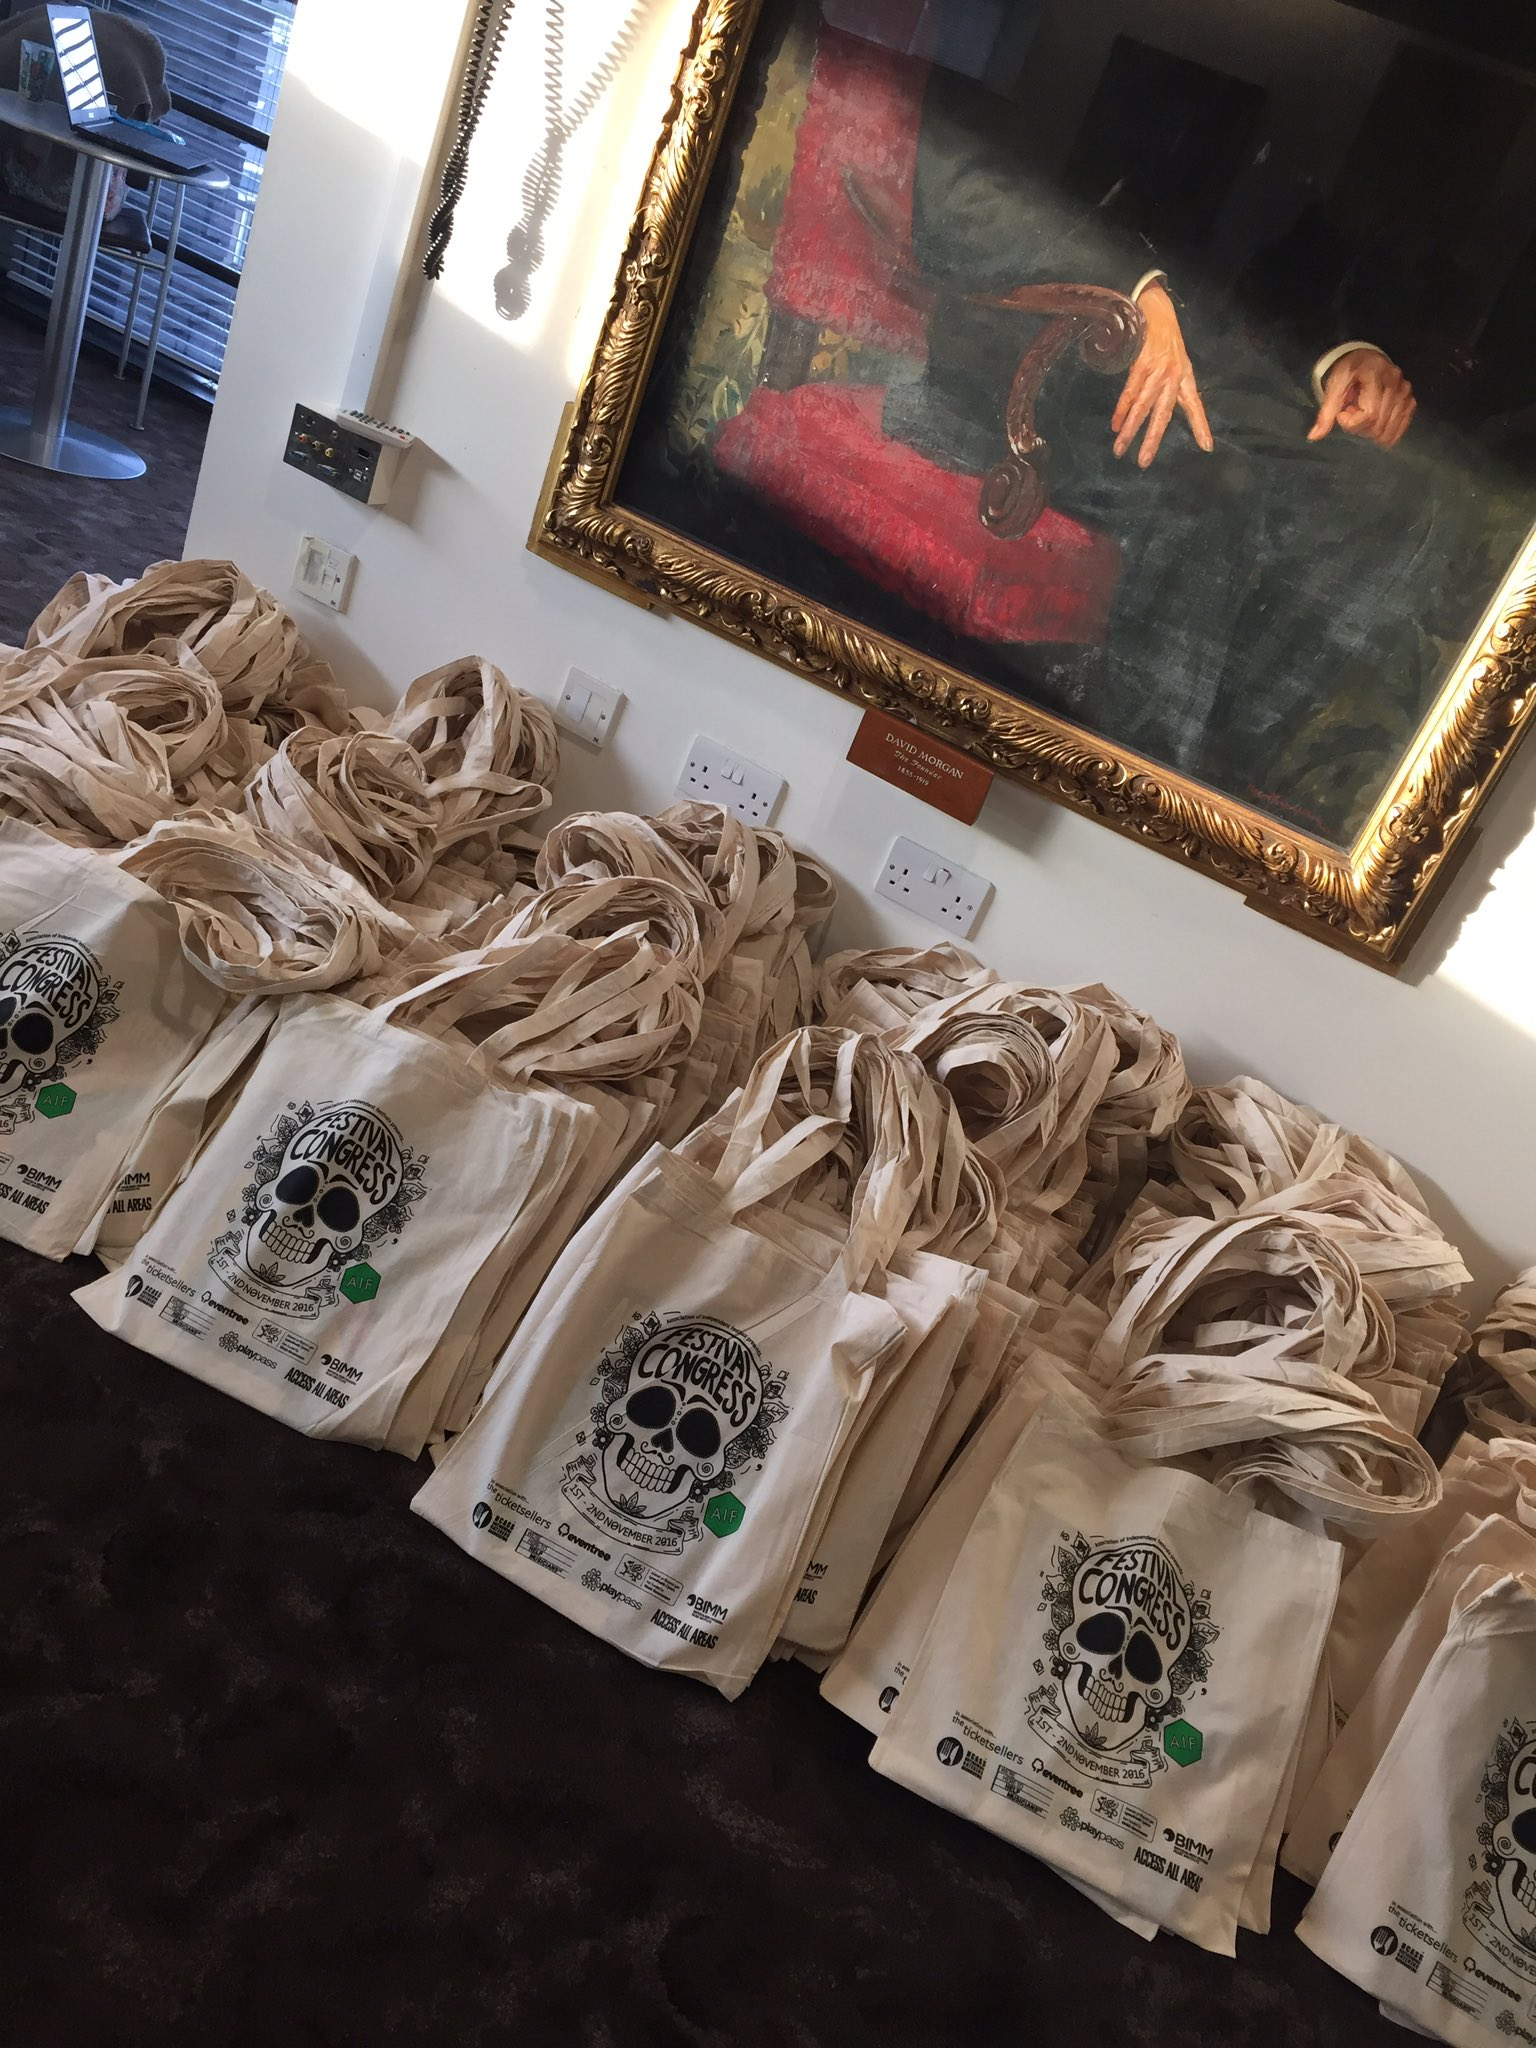 Bags are packed and ready! #FestCongress https://t.co/ogZ6BIIKK7